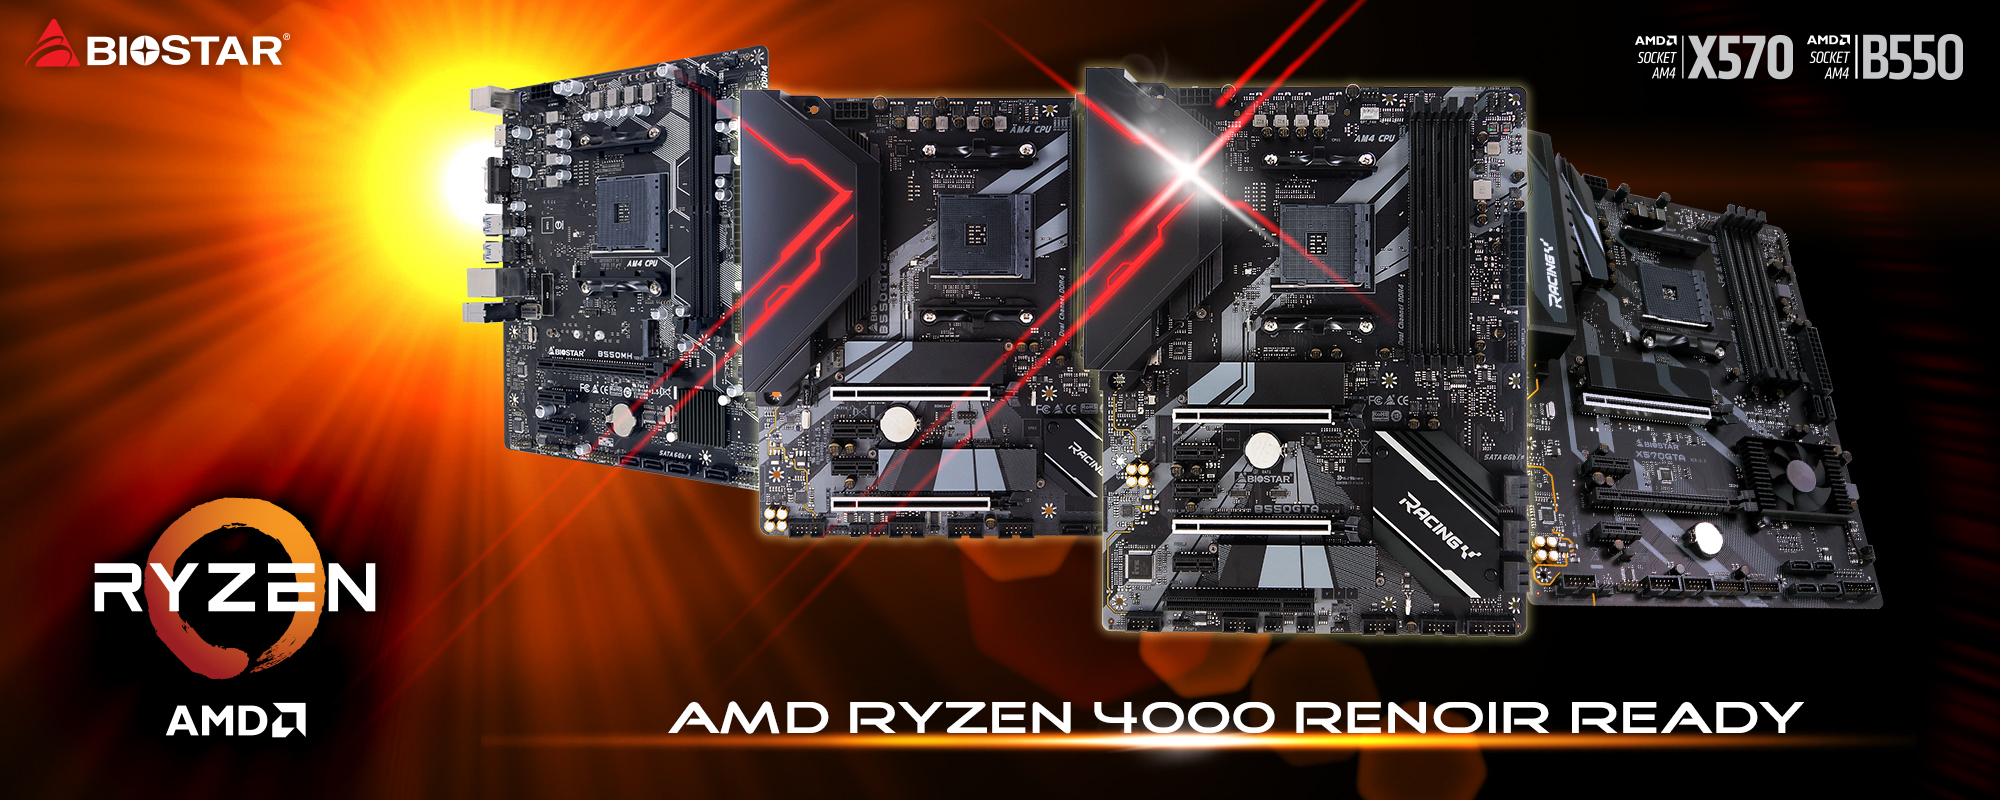 AMD RYZEN 4000 RENOIR READY